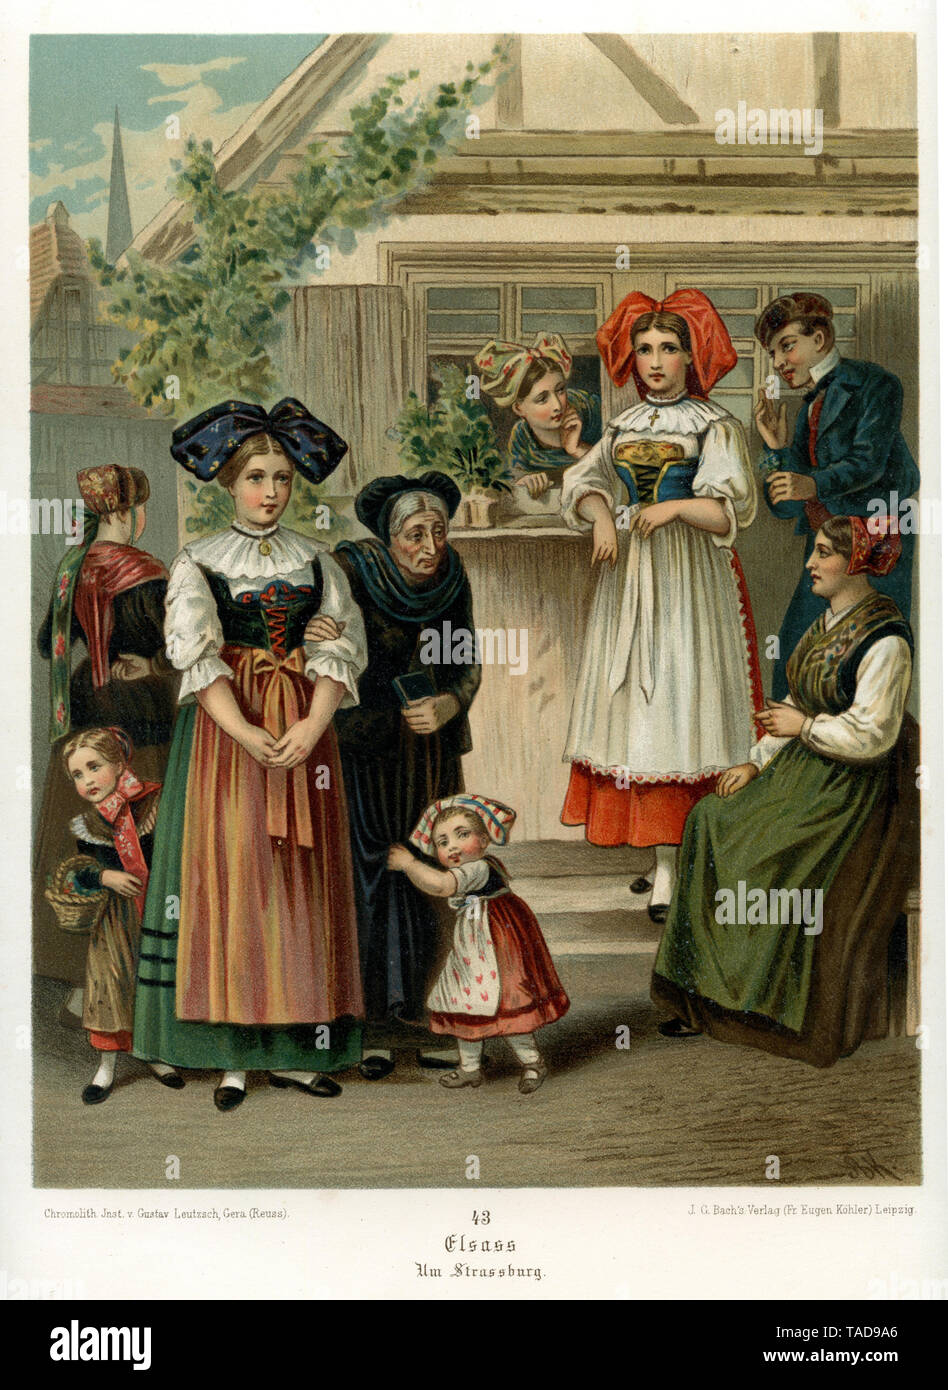 Alsace: traditional costumes from the region around Strasbourg, from Albert Kretschmer, German folk costumes, 1889 , Albert Kretschmer (, ) - Stock Image